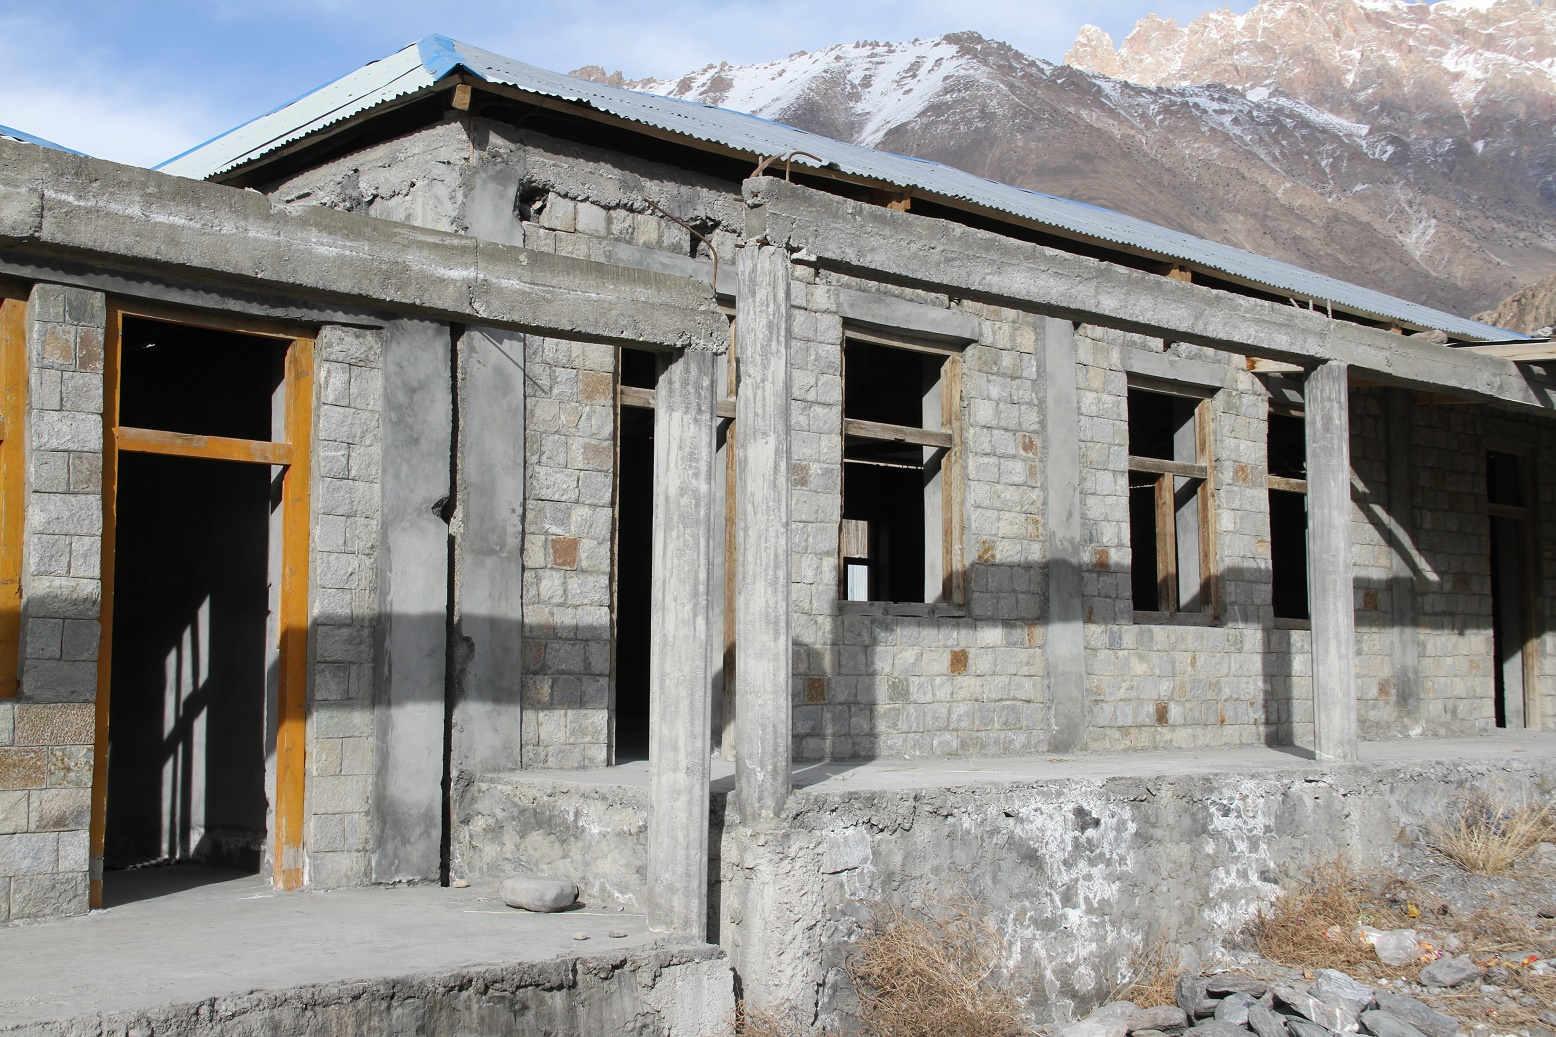 Incomplete Sost High School Building: Locals urge NAB to take action against contractor